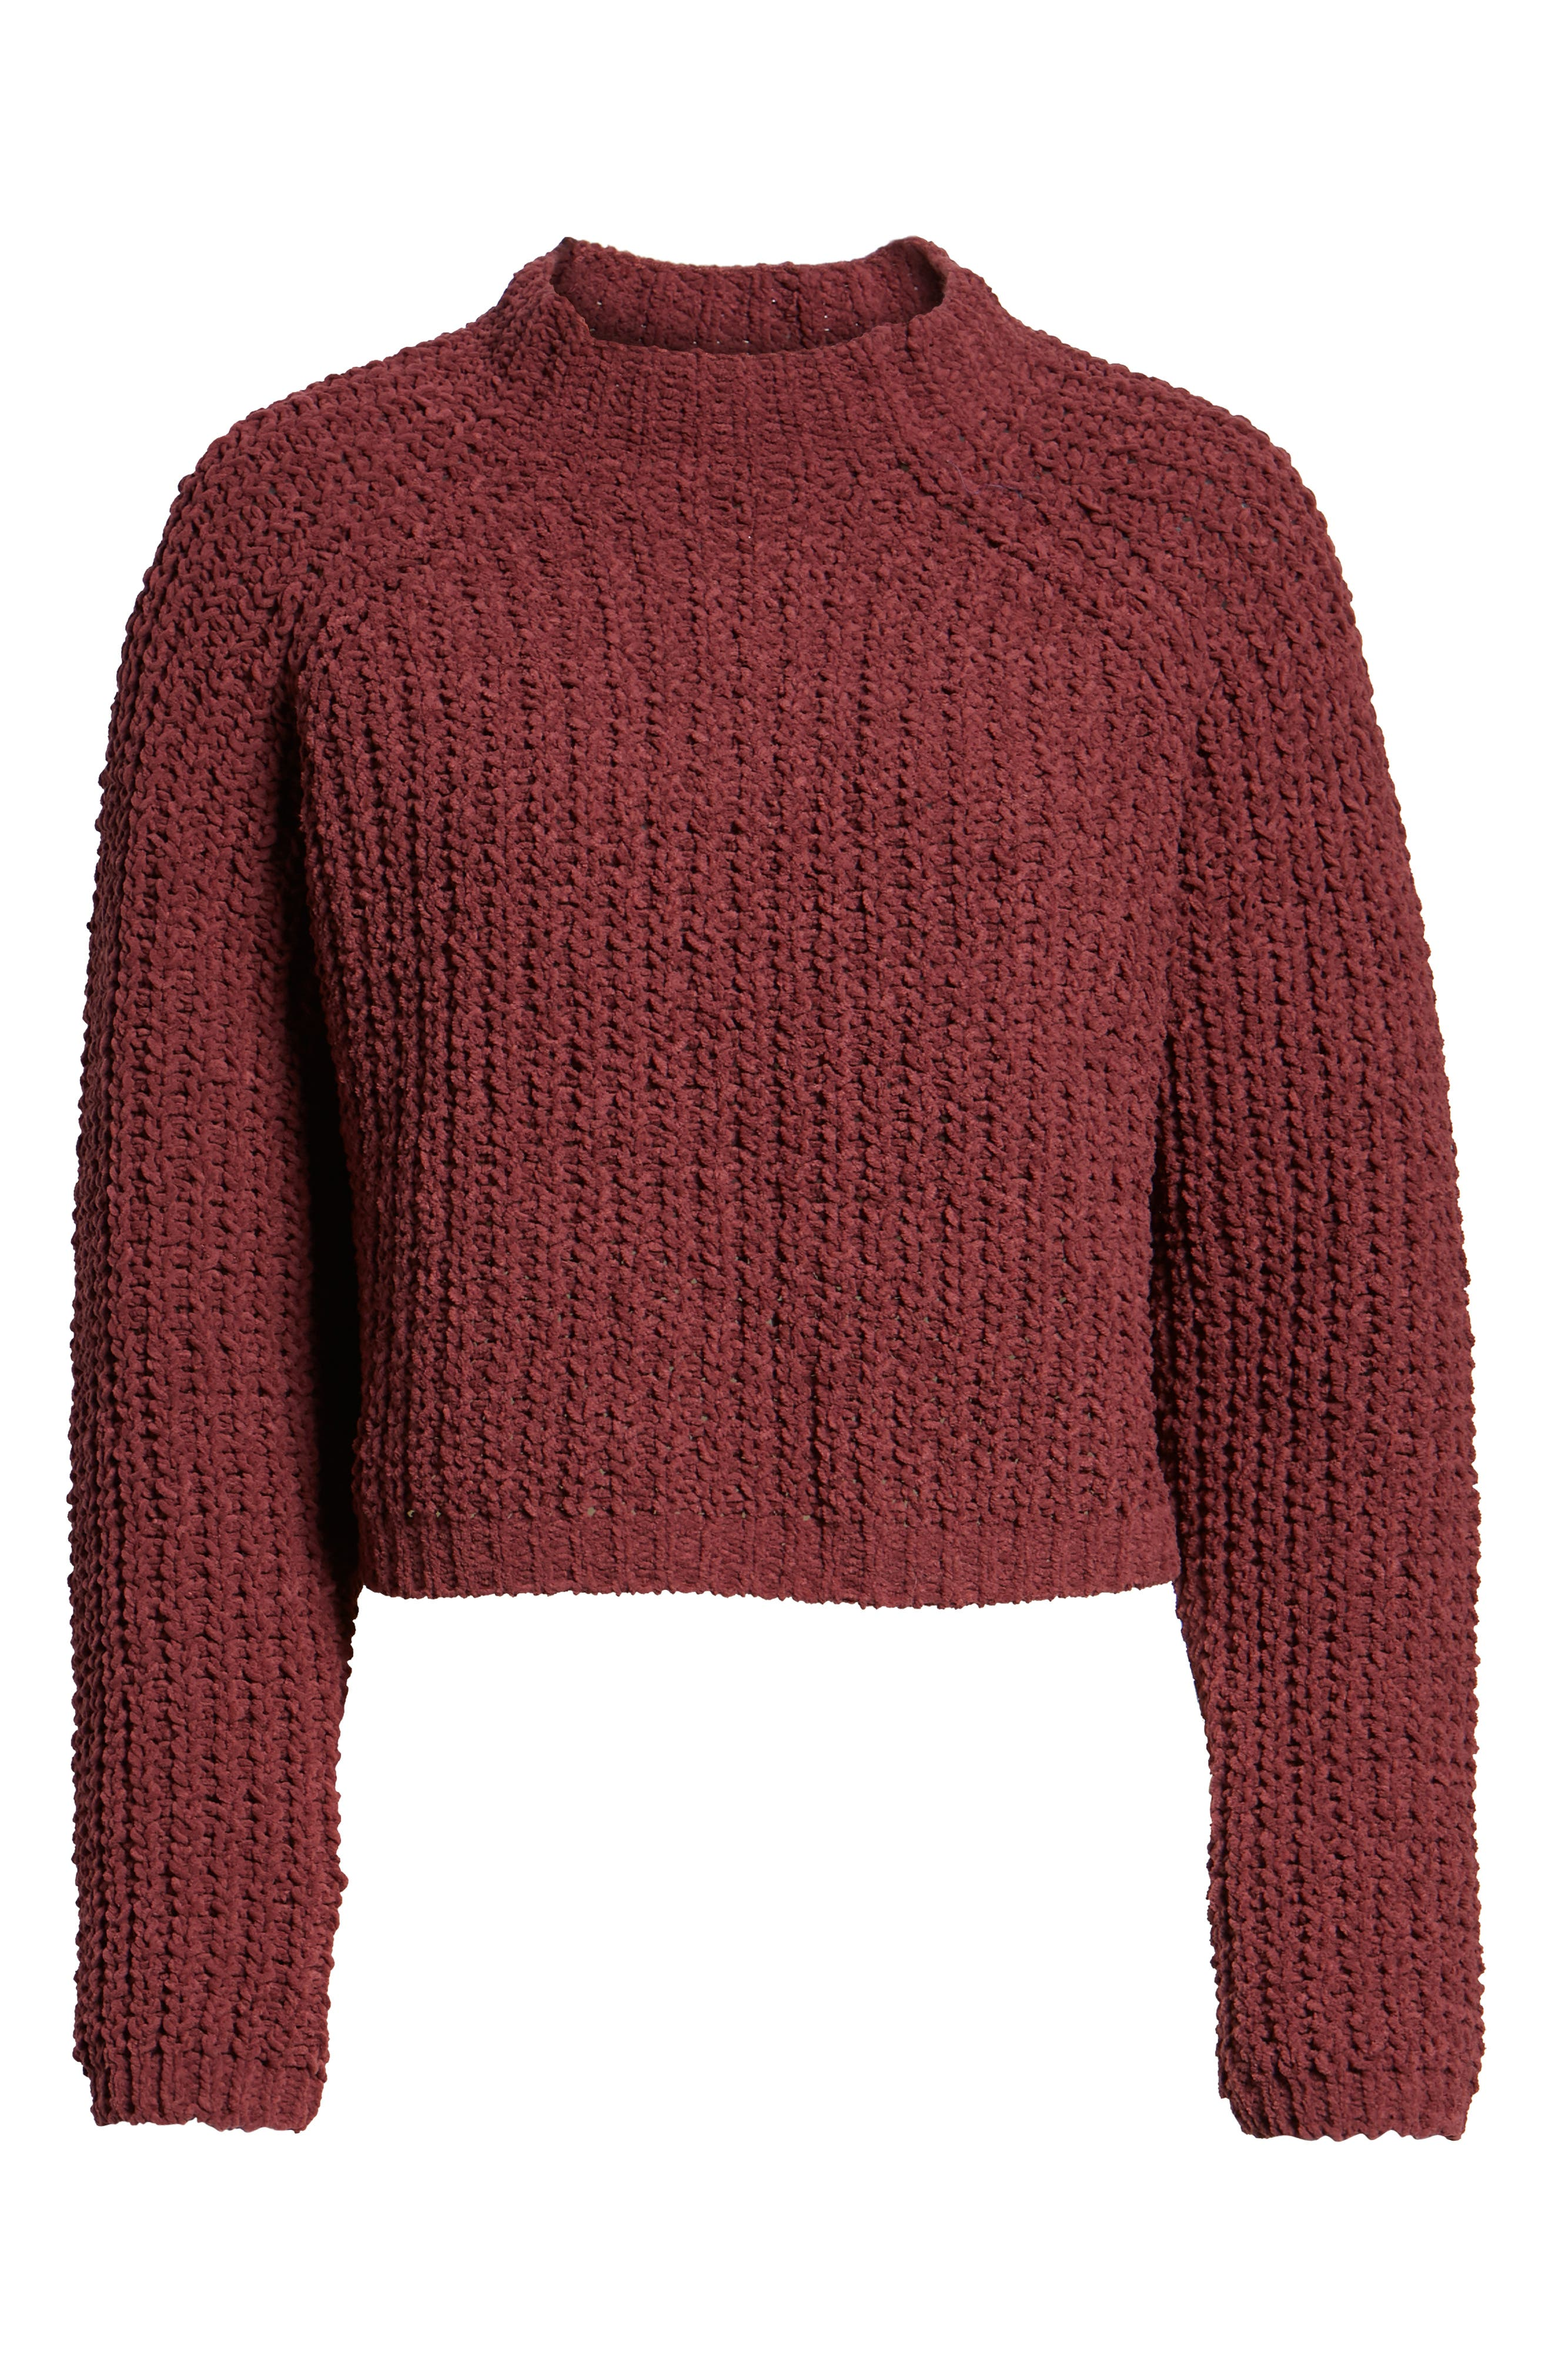 Chenille Sweater,                             Alternate thumbnail 6, color,                             RED RUMBA